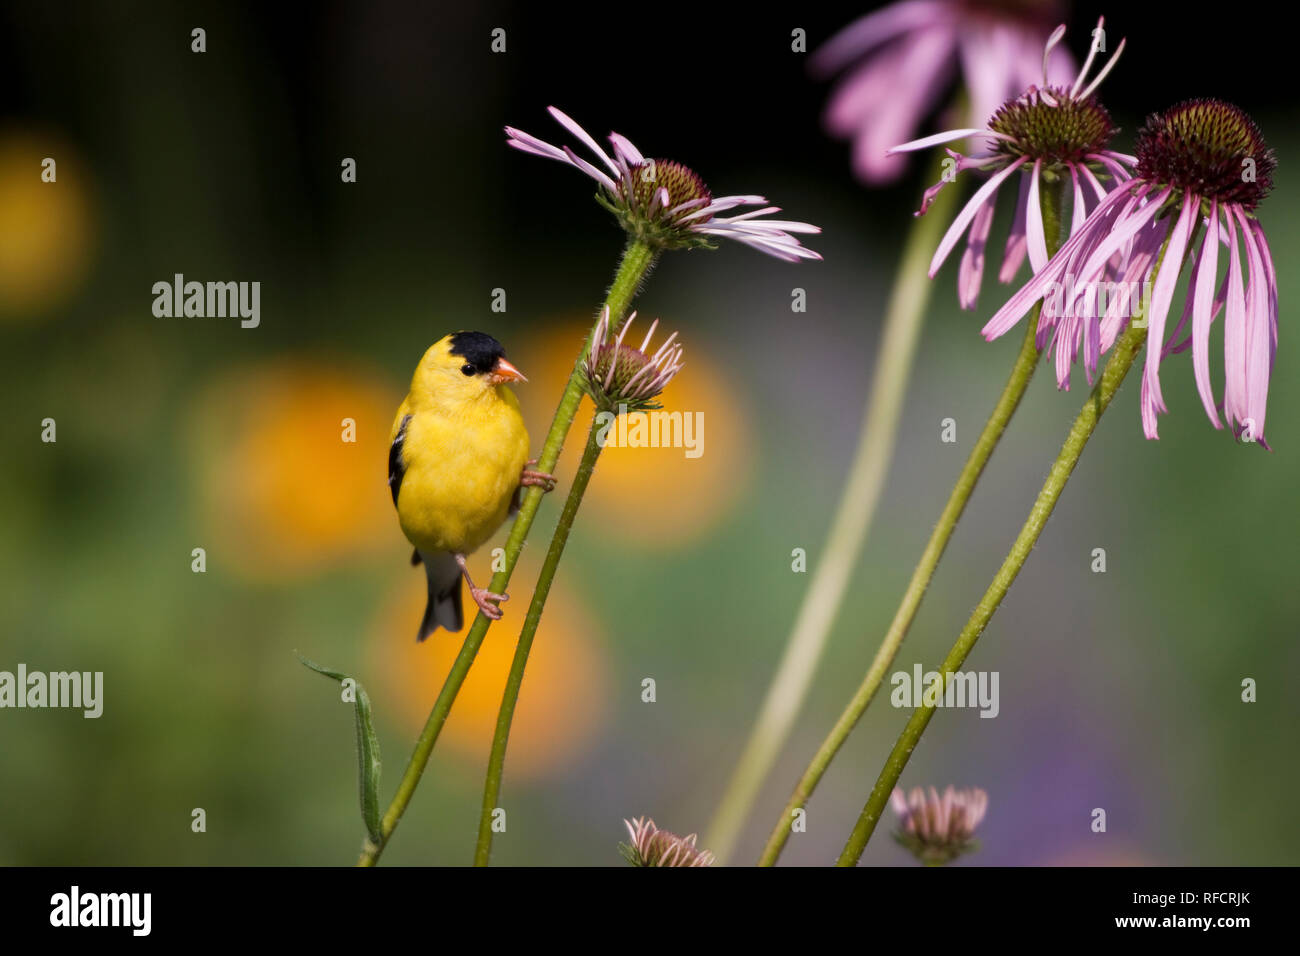 01640-15918 American Goldfinch (Carduelis tristis) male on Pale Purple Coneflower (Echinacea pallida)  in garden, Marion Co., IL - Stock Image